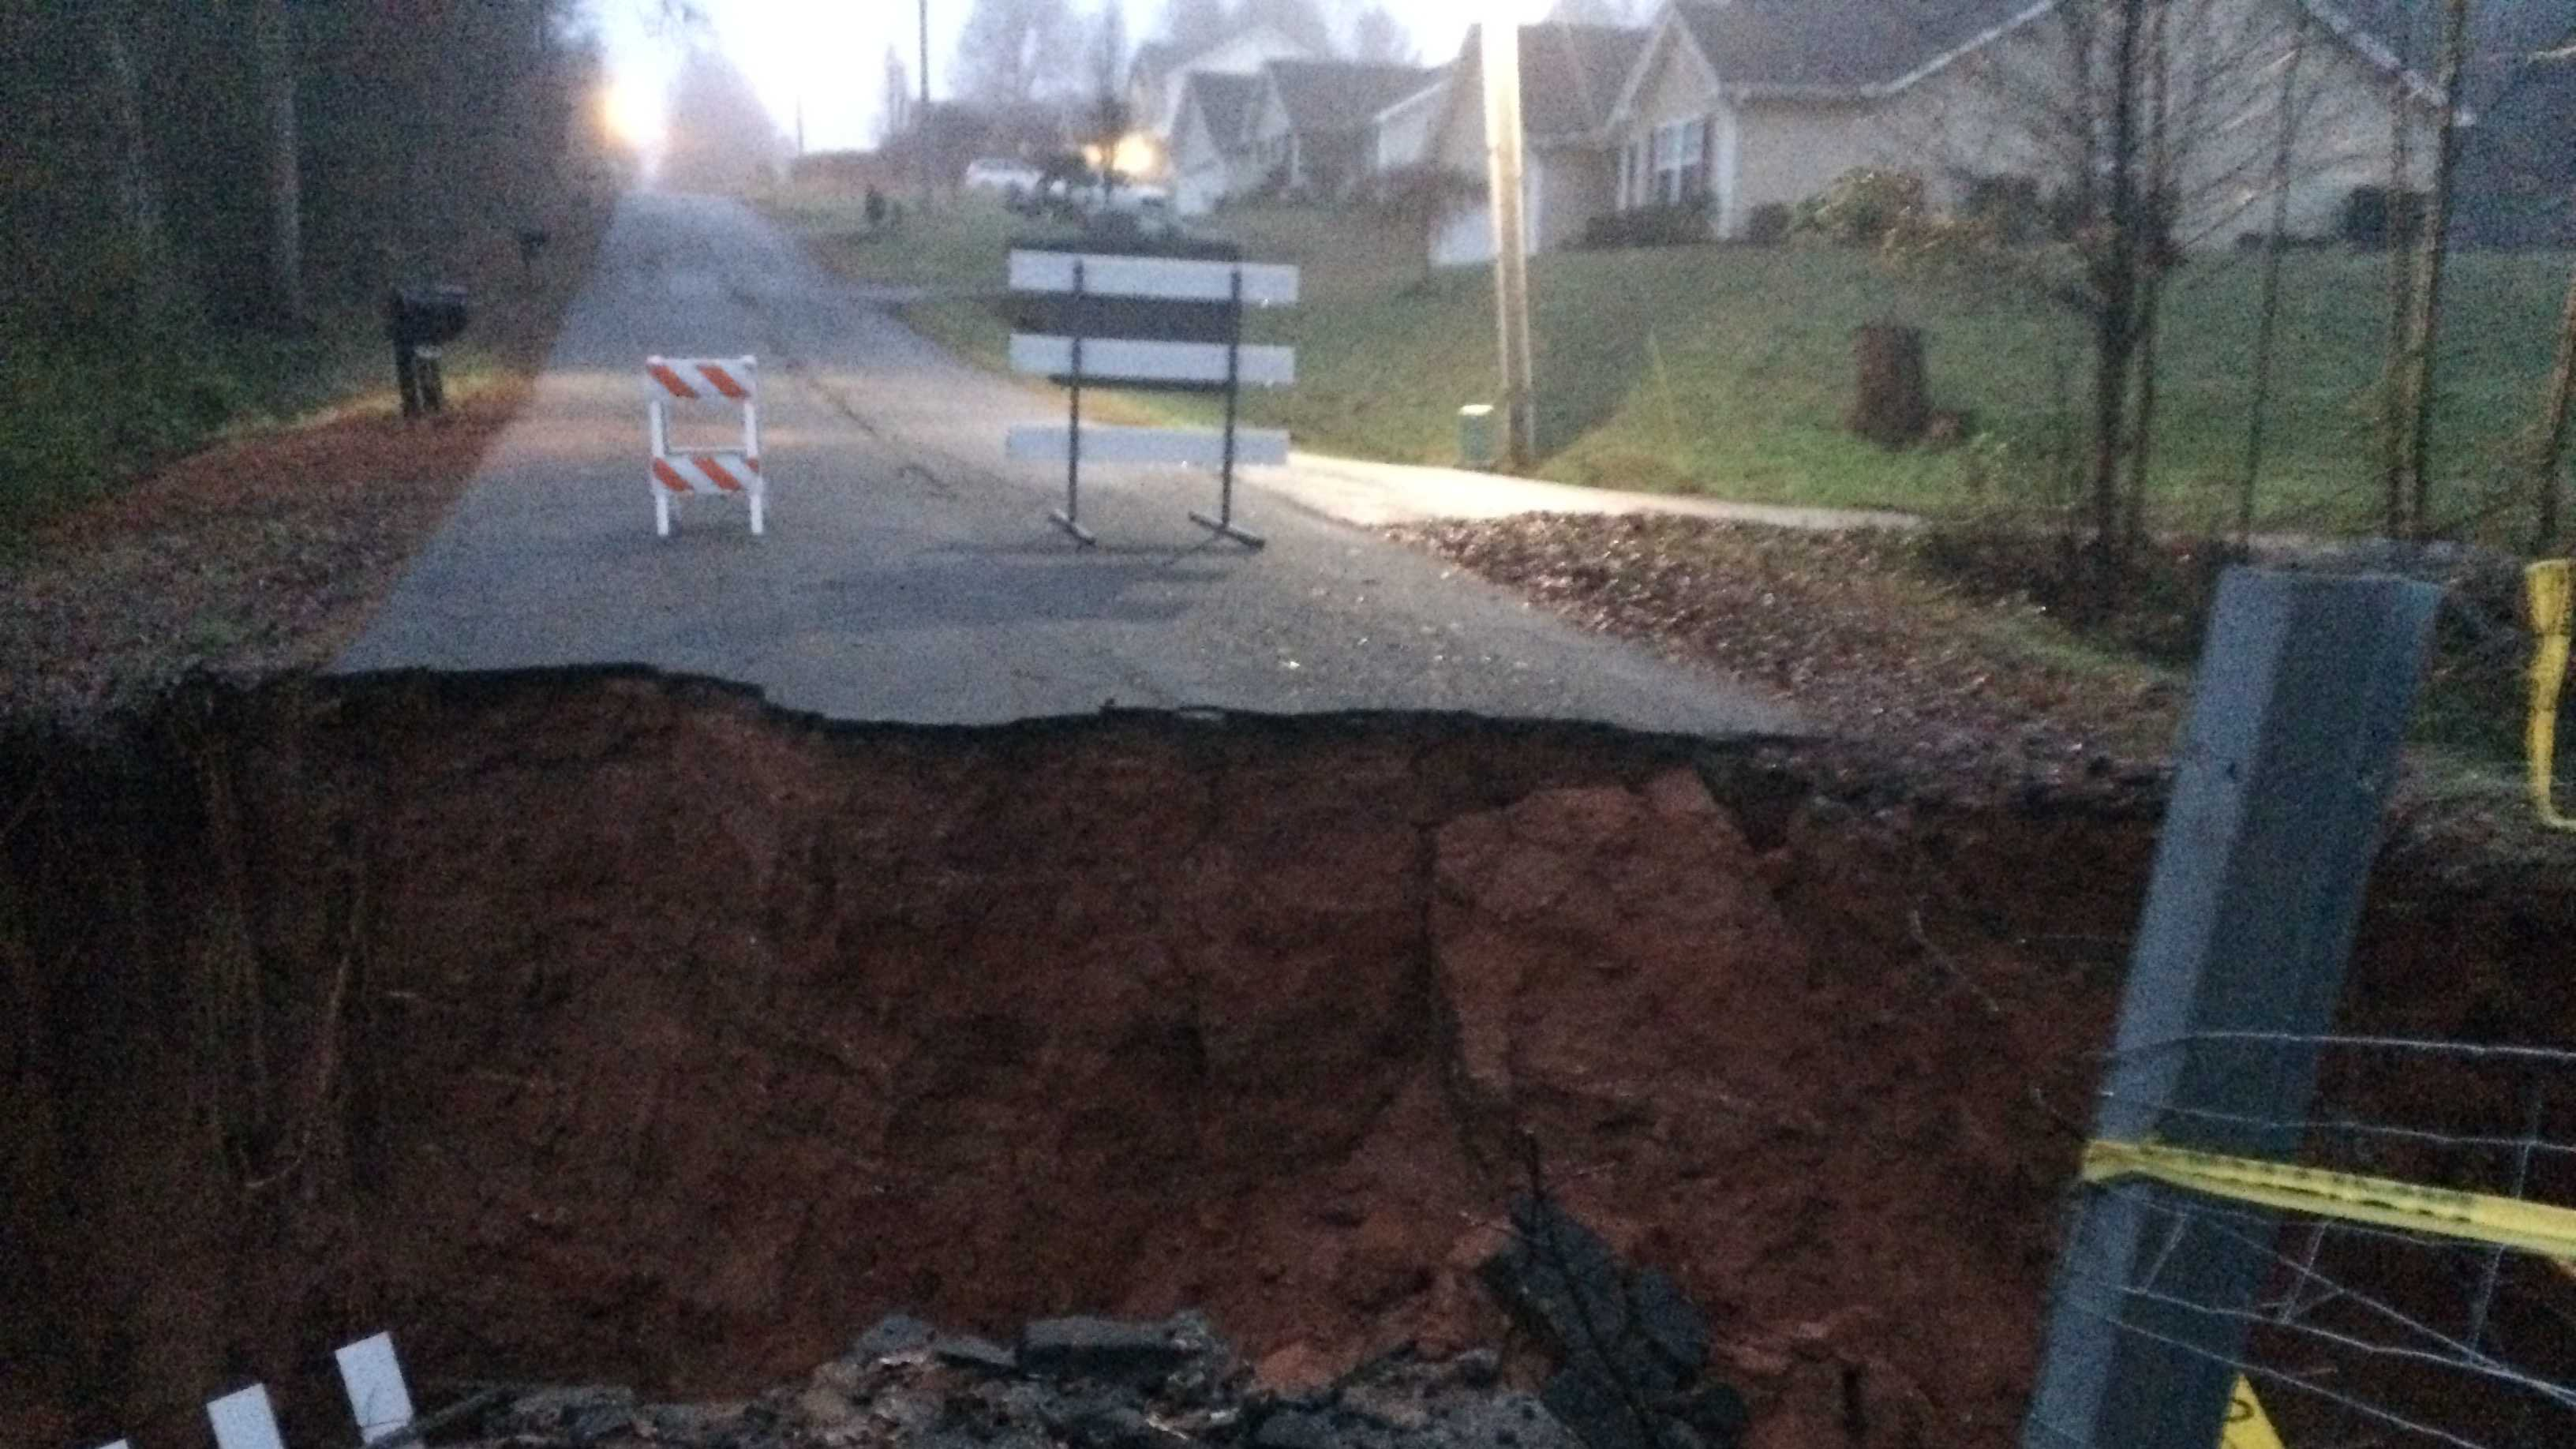 Guyton Road partially collapsed on Christmas morning, according to neighbors.